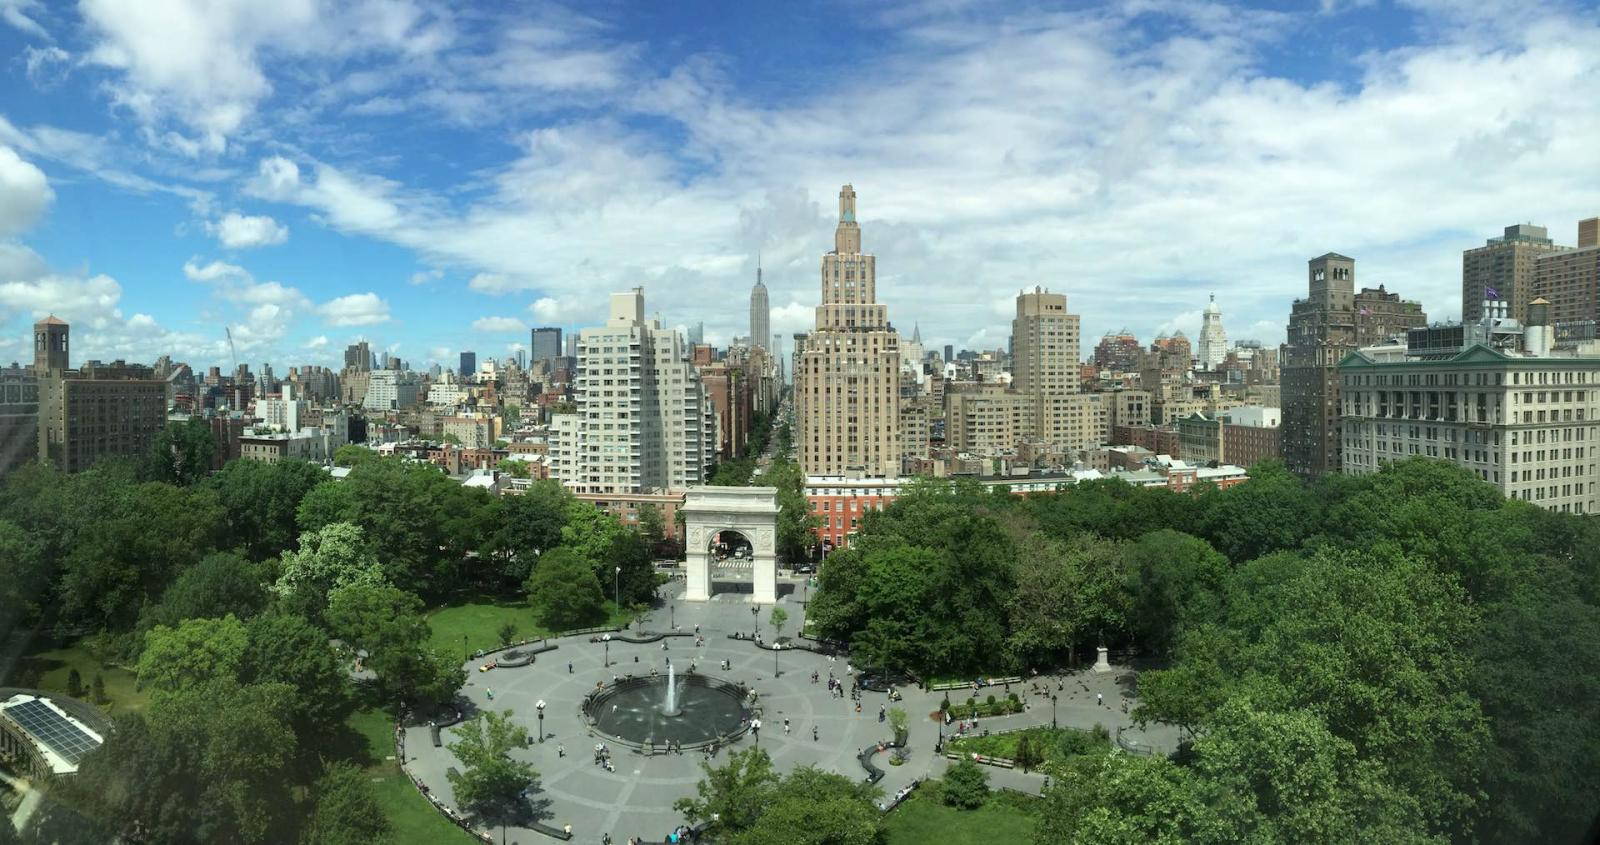 Der Washington Square Park